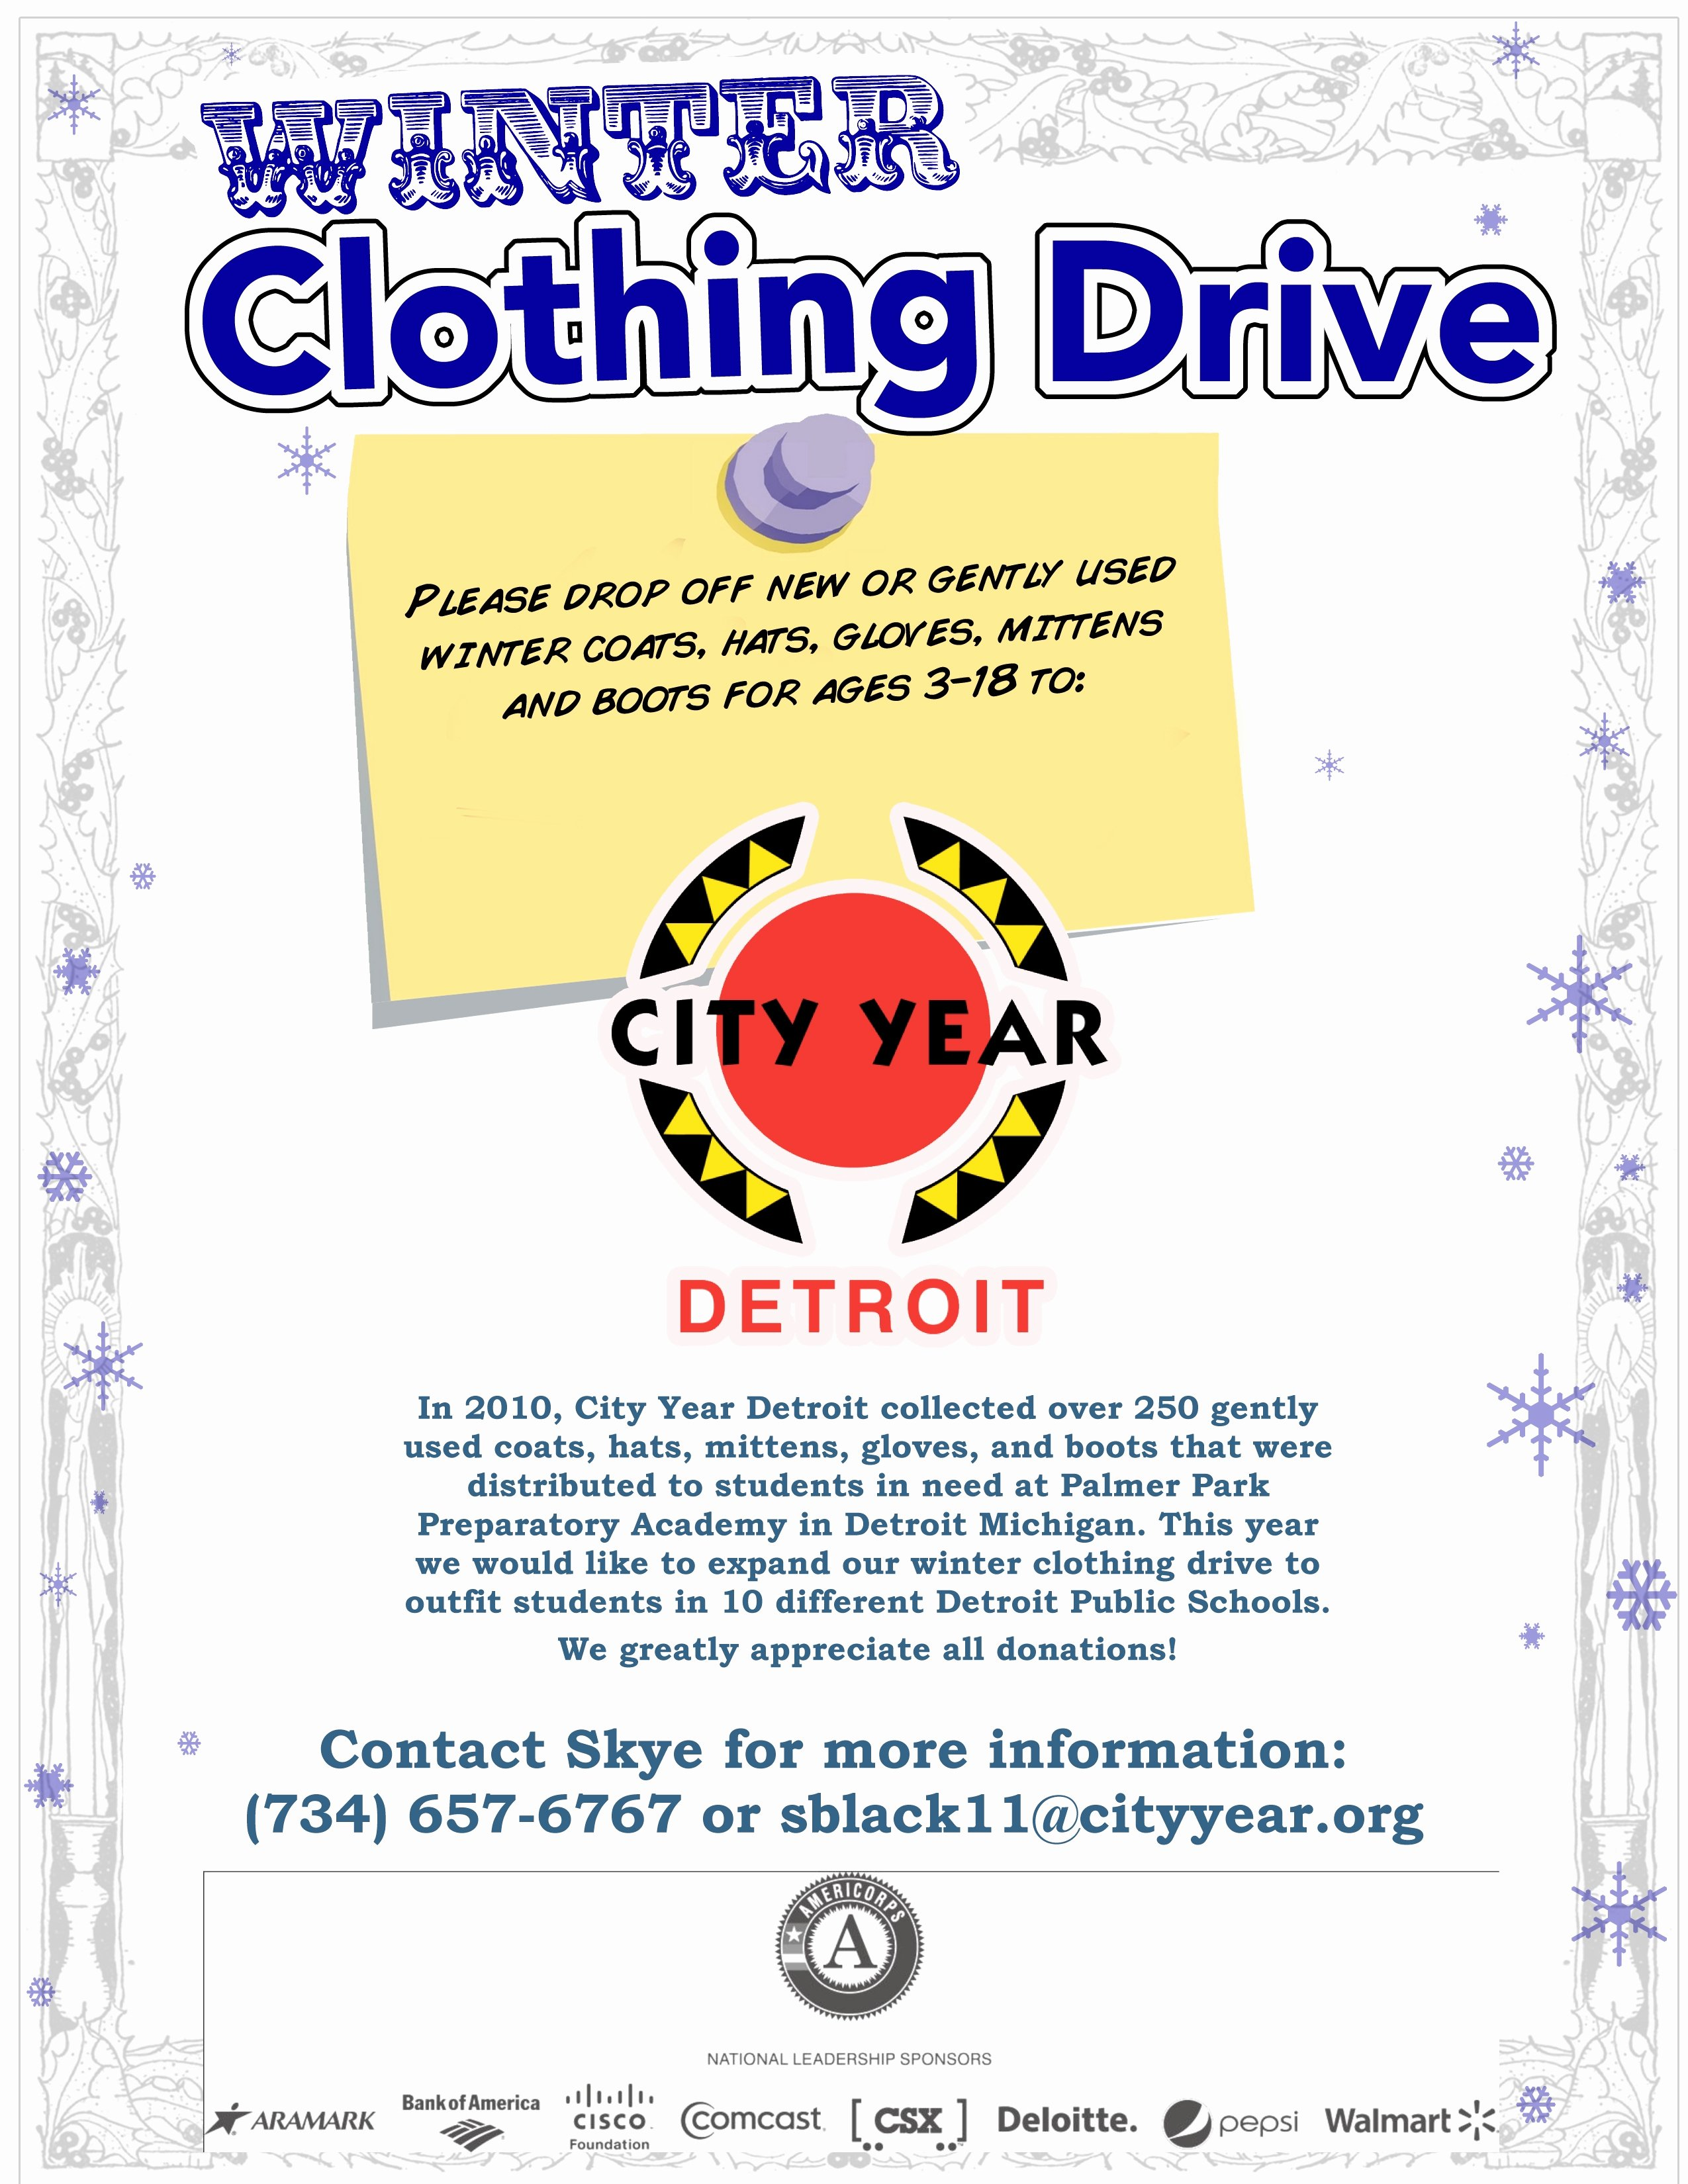 Clothing Drive Flyer Template Elegant City Year Detroit Winter Clothing Drive